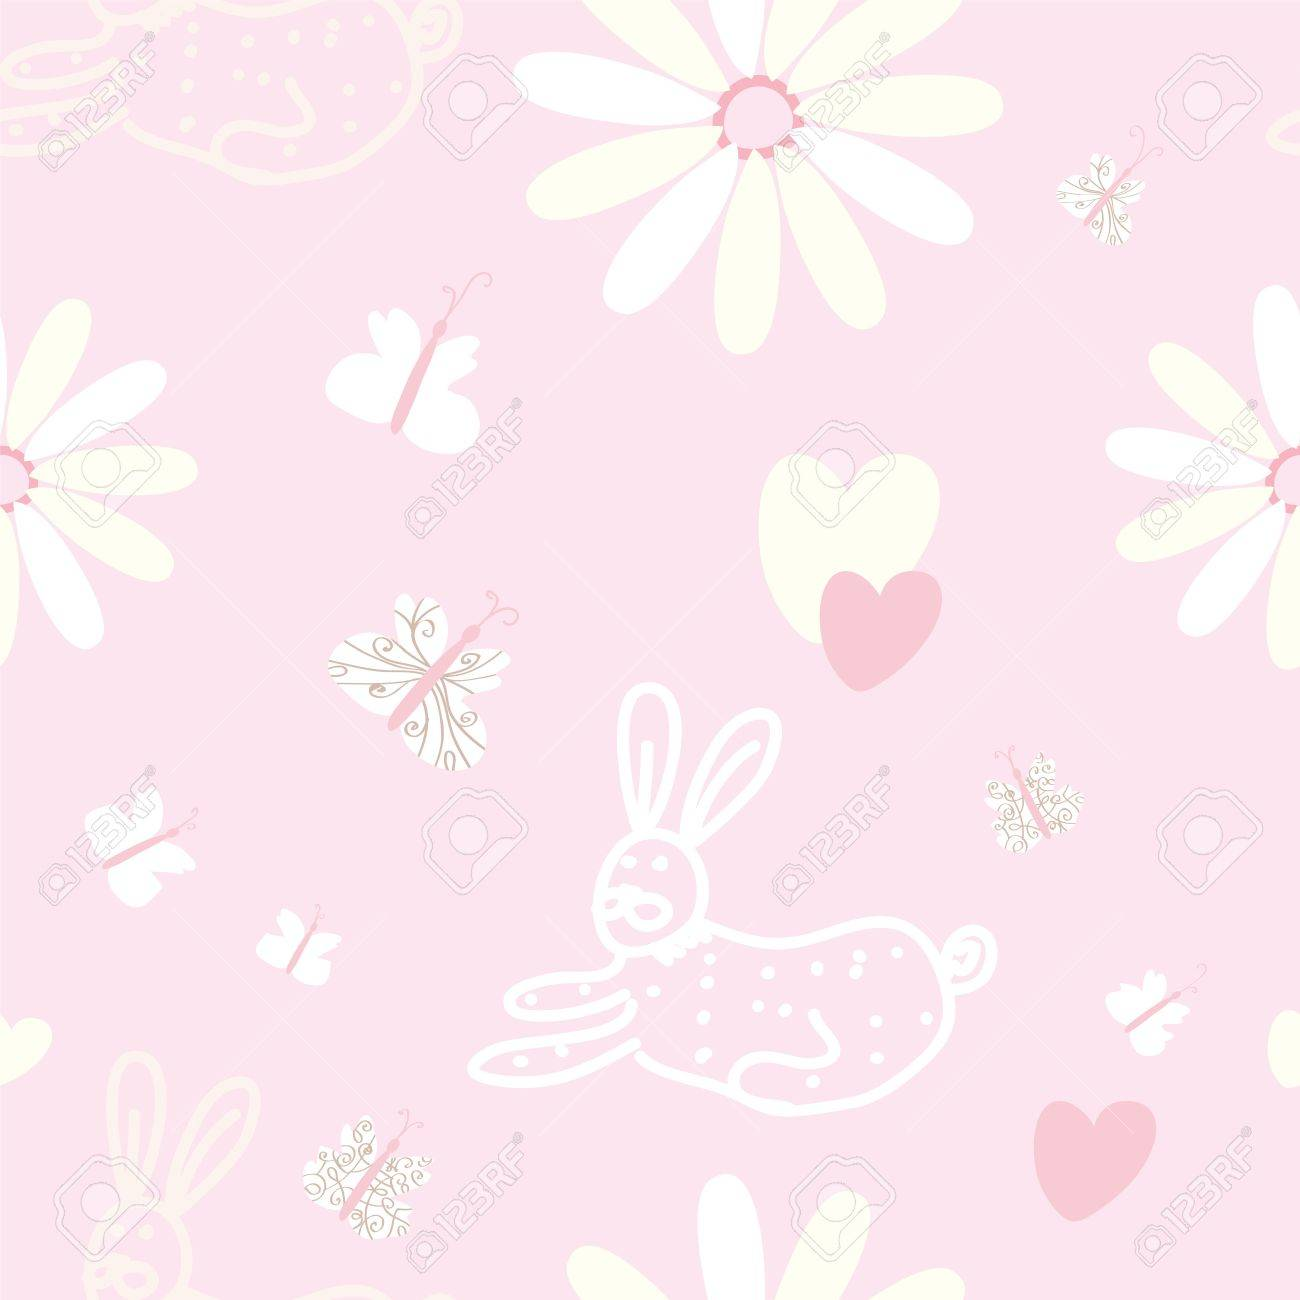 Baby Seamless Pink Pattern With Rabbit And Butterfly Royalty Free Cliparts Vectors And Stock Illustration Image 19290675